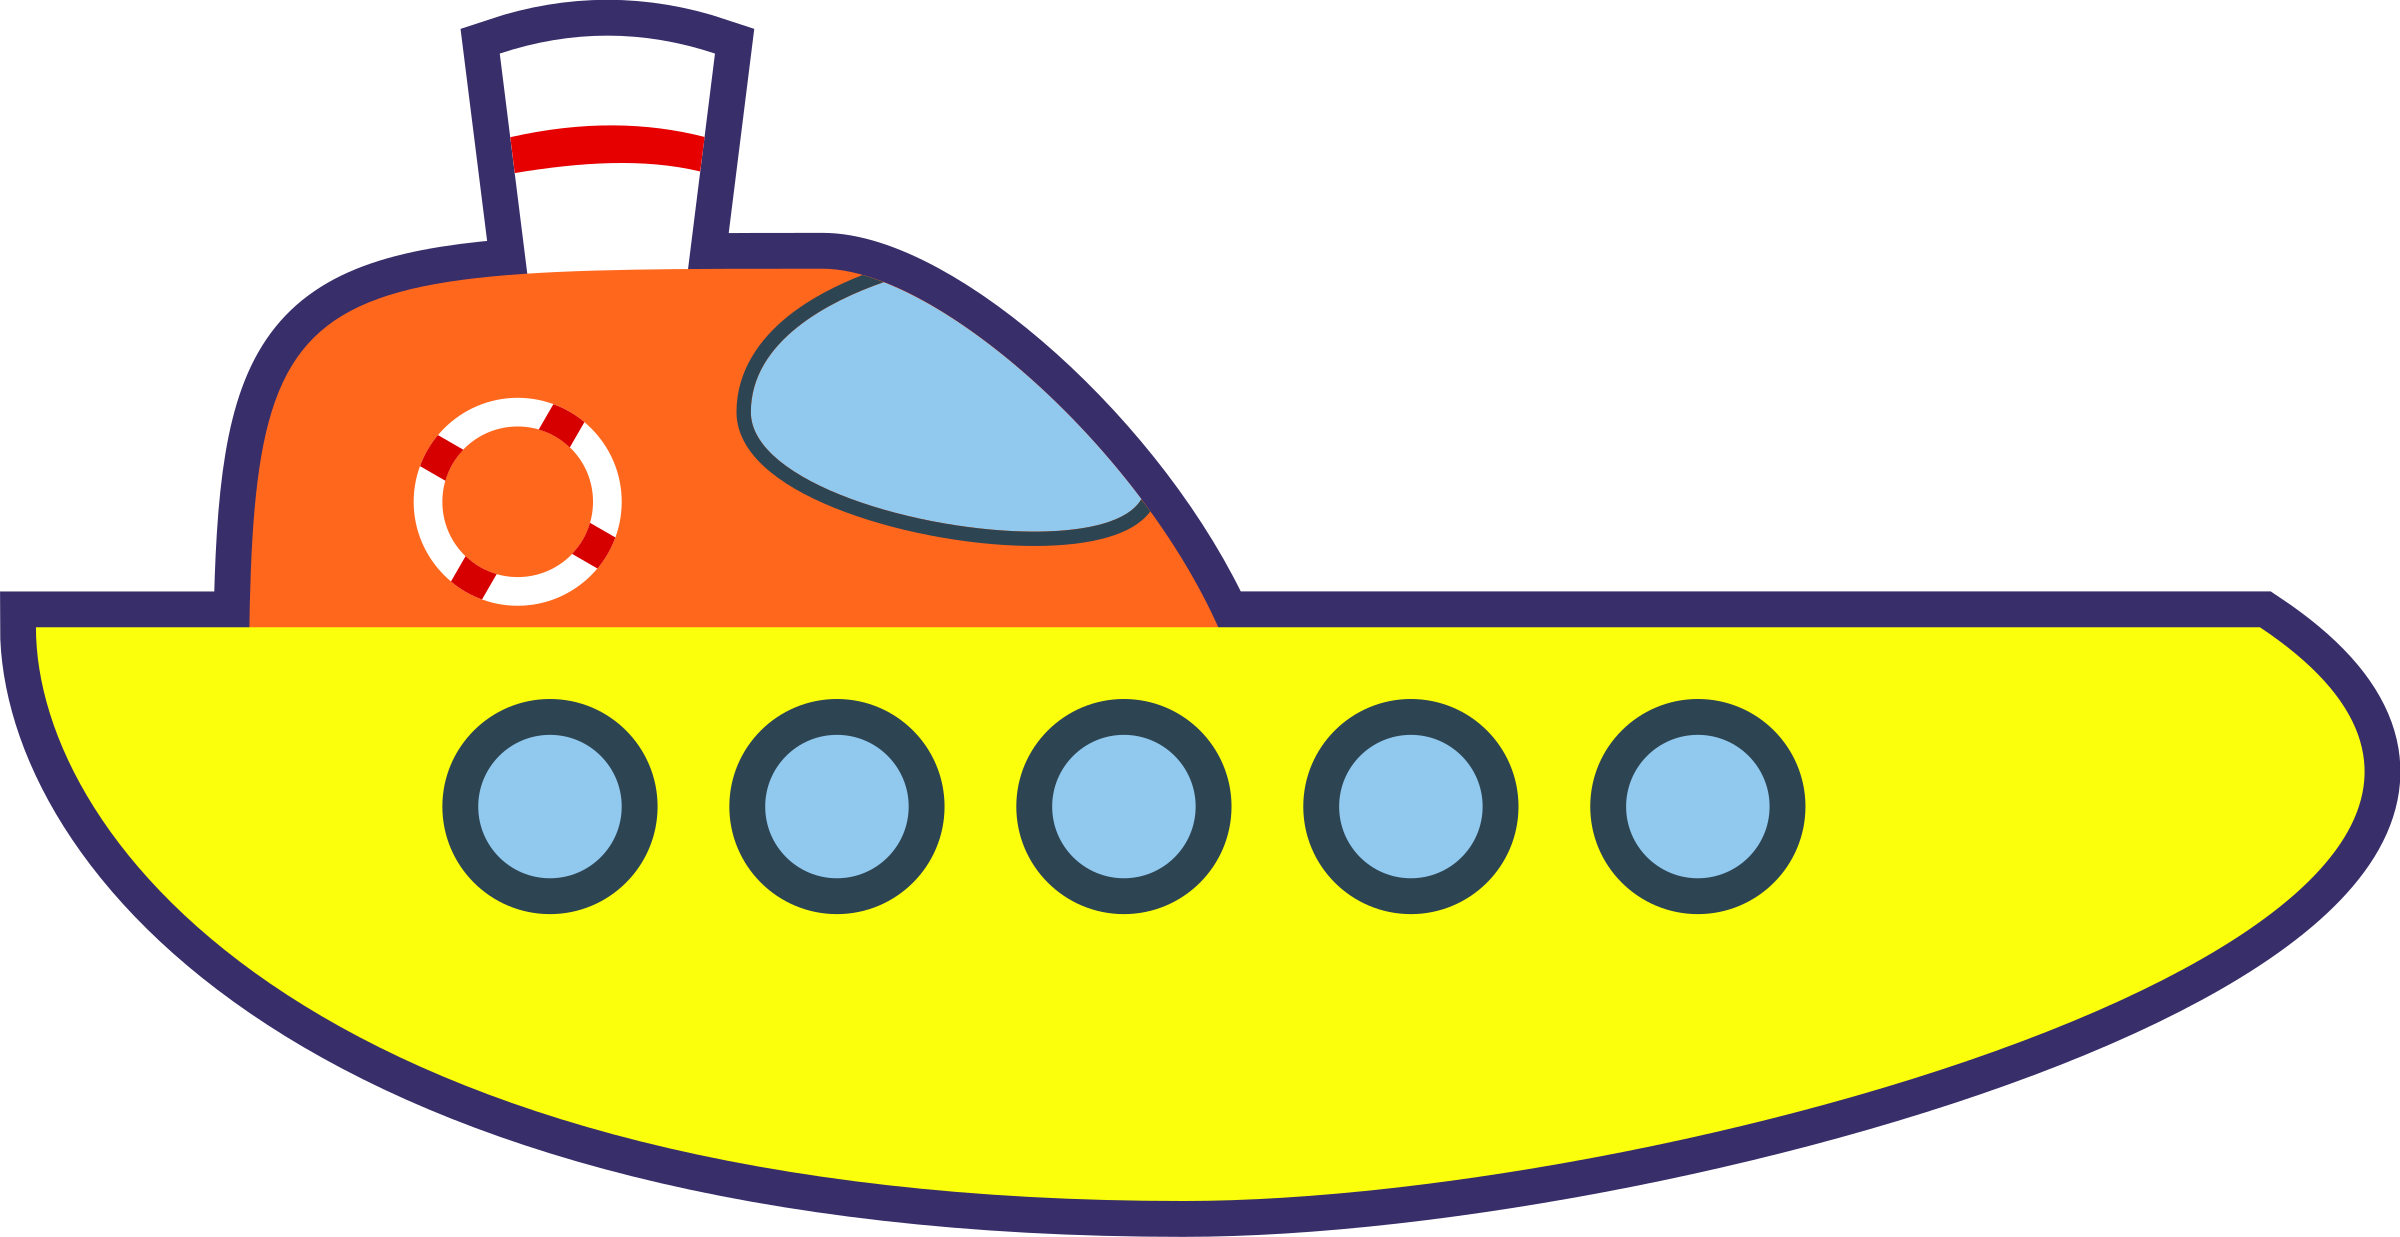 Cartoon ship png. Yellow icons free and